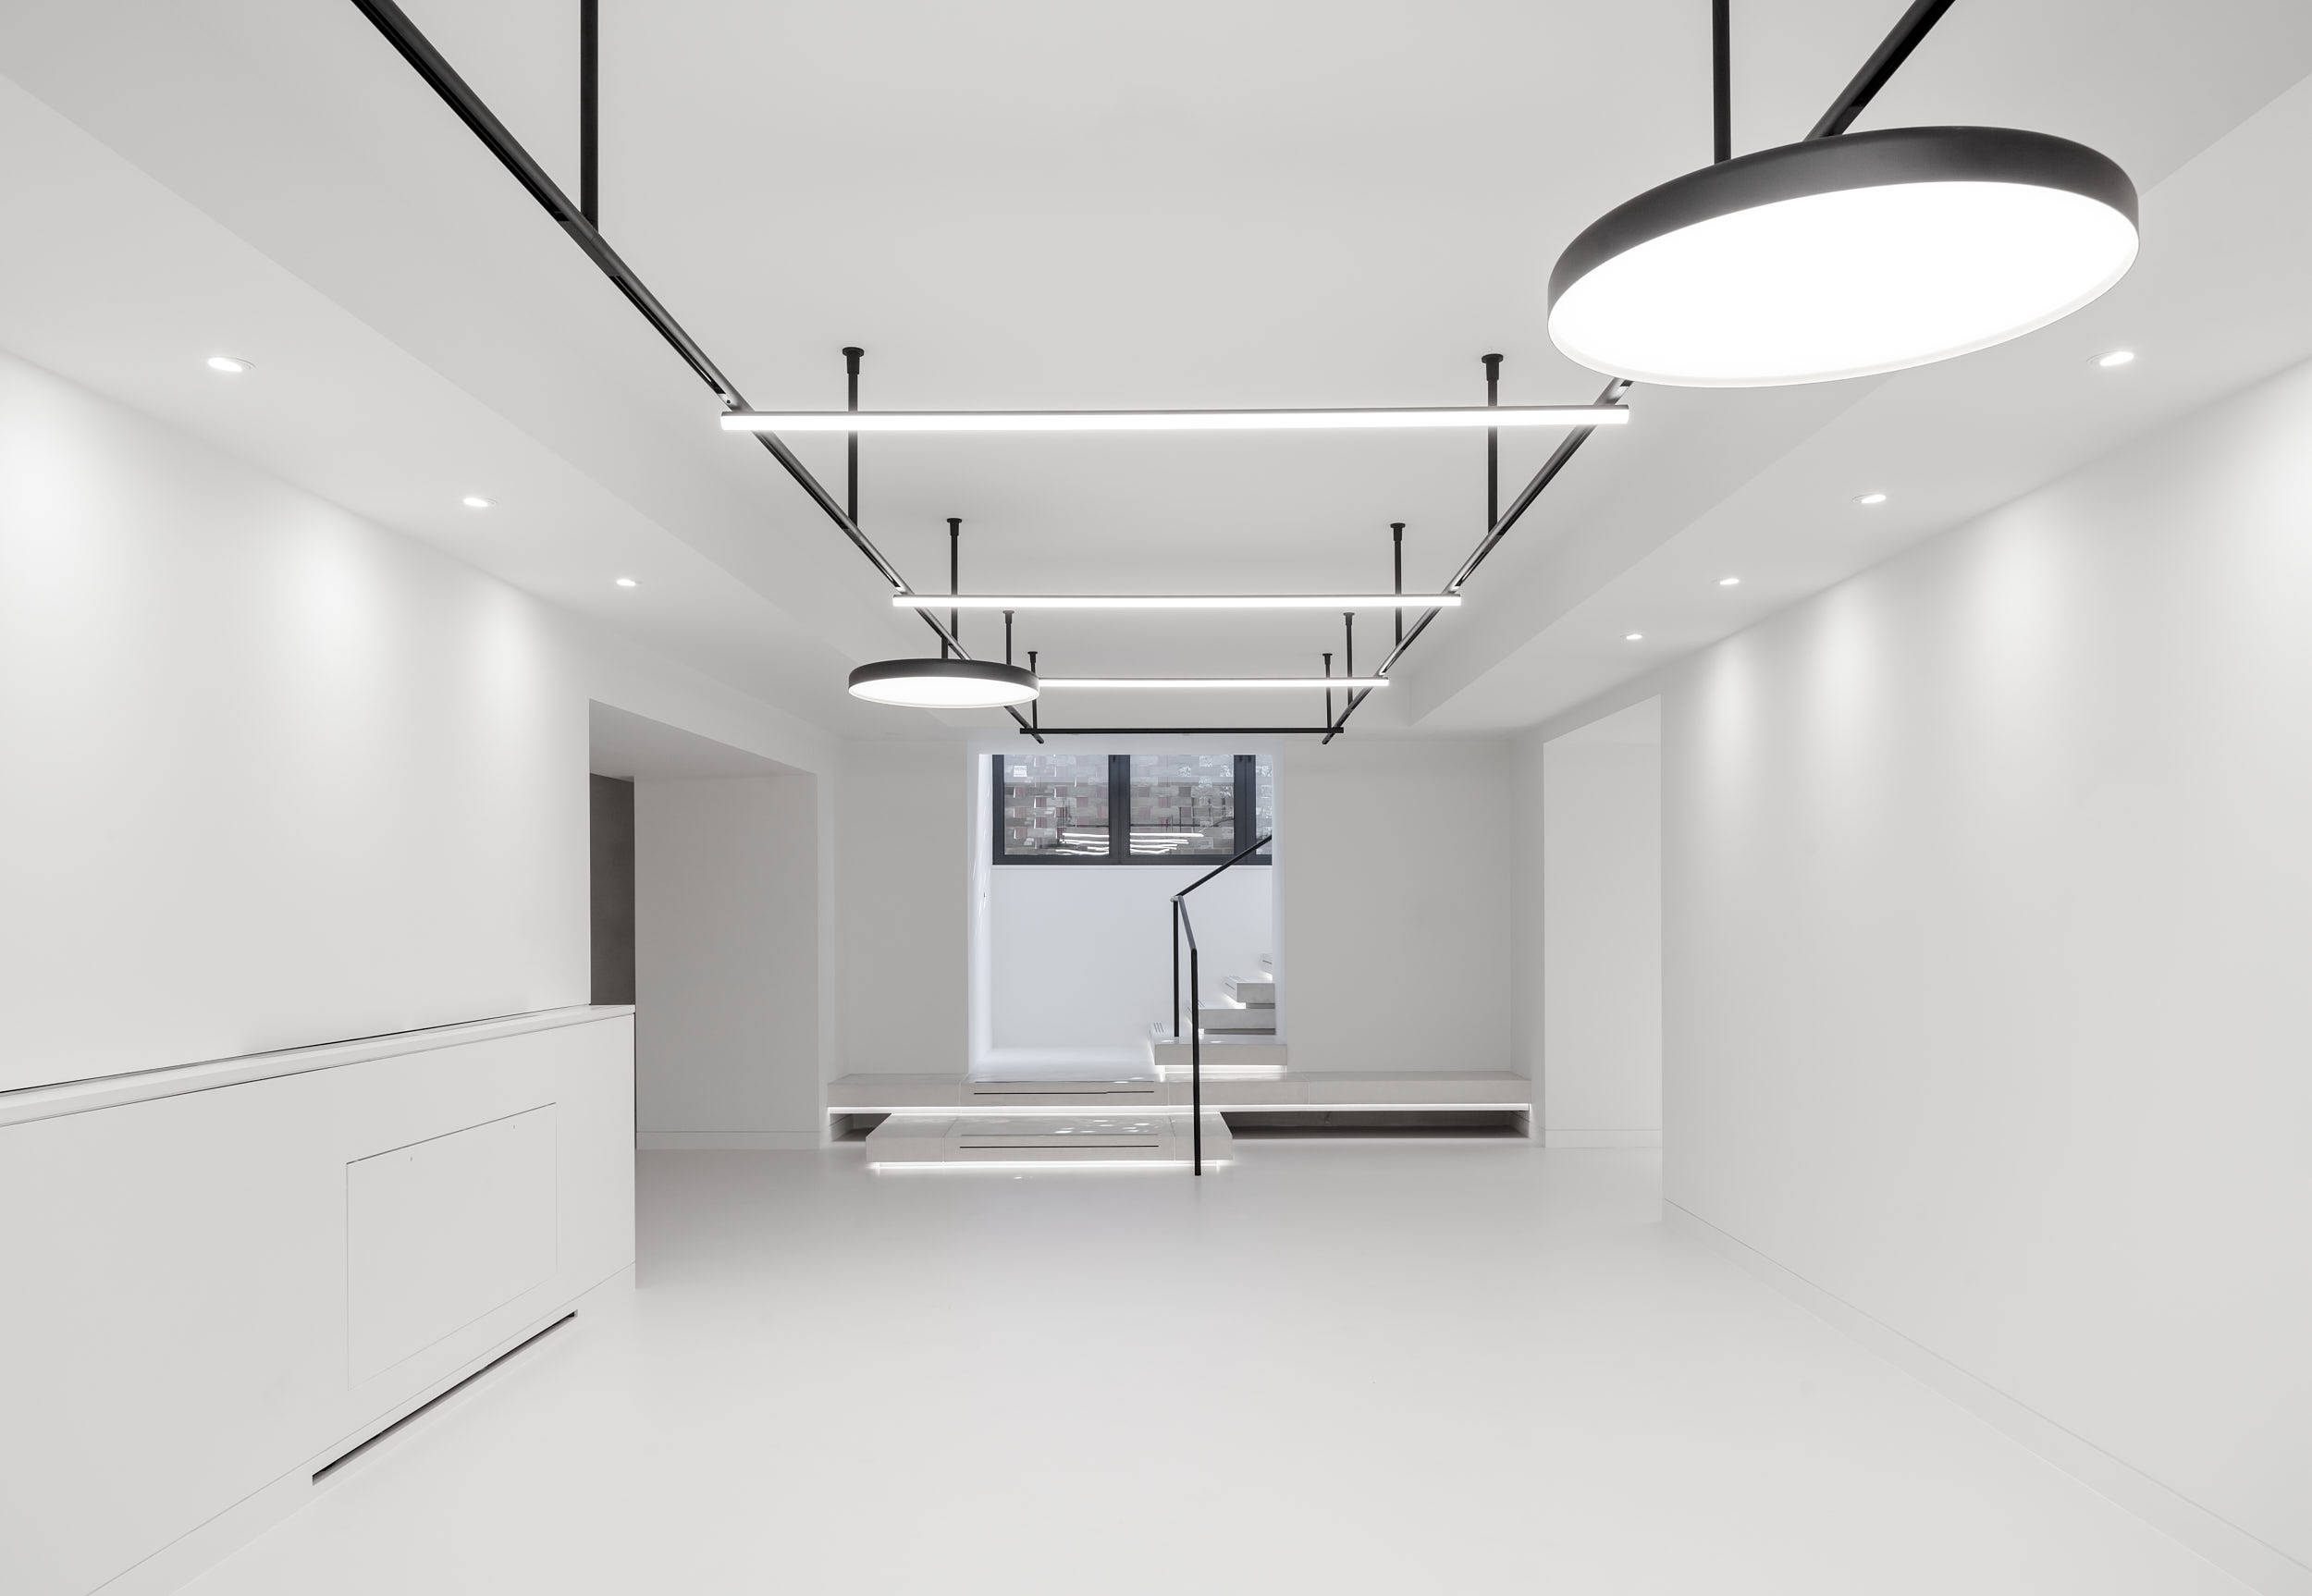 Interior design features custom black lighting track and bespoke joinery.